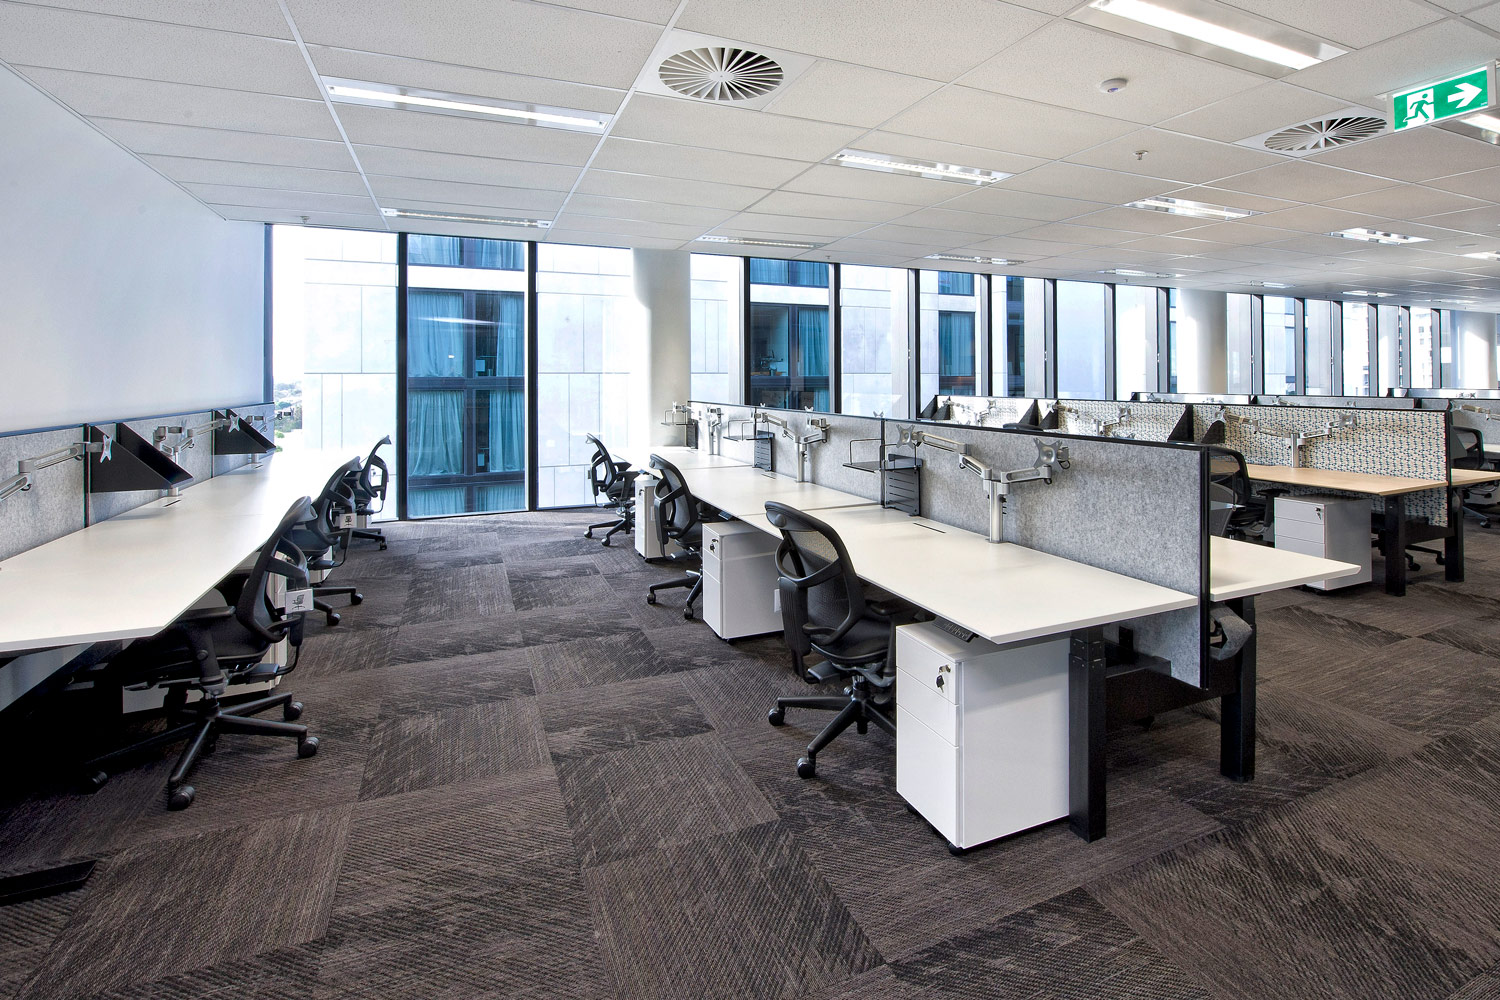 Actif workstations, Gamma chairs, desk mounted shelves, Easy mobile pedestals and KI dual monitor arms